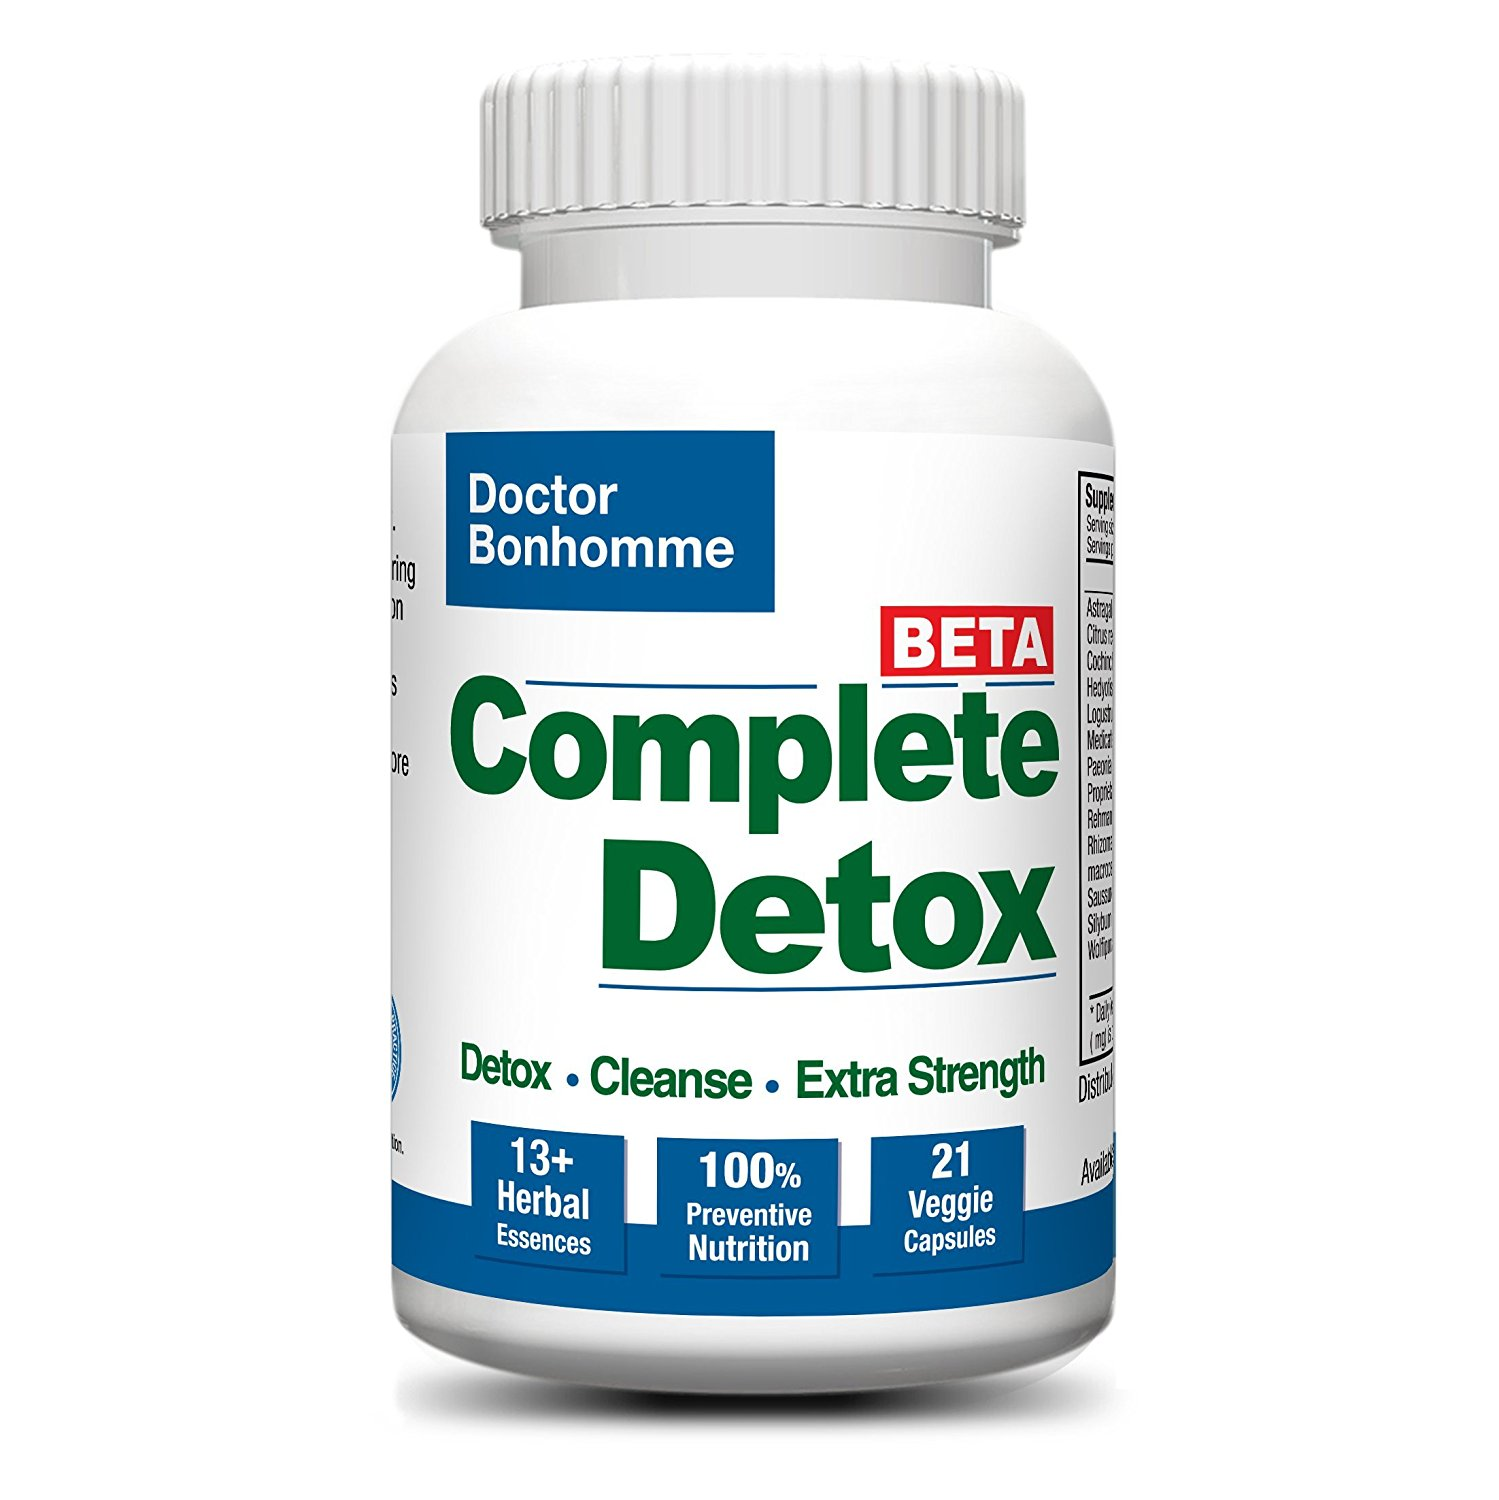 Complete Detox [BETA Formula ]7 day 21 Caps ? Accelerated whole body detox with laxative for most thorough cleanse